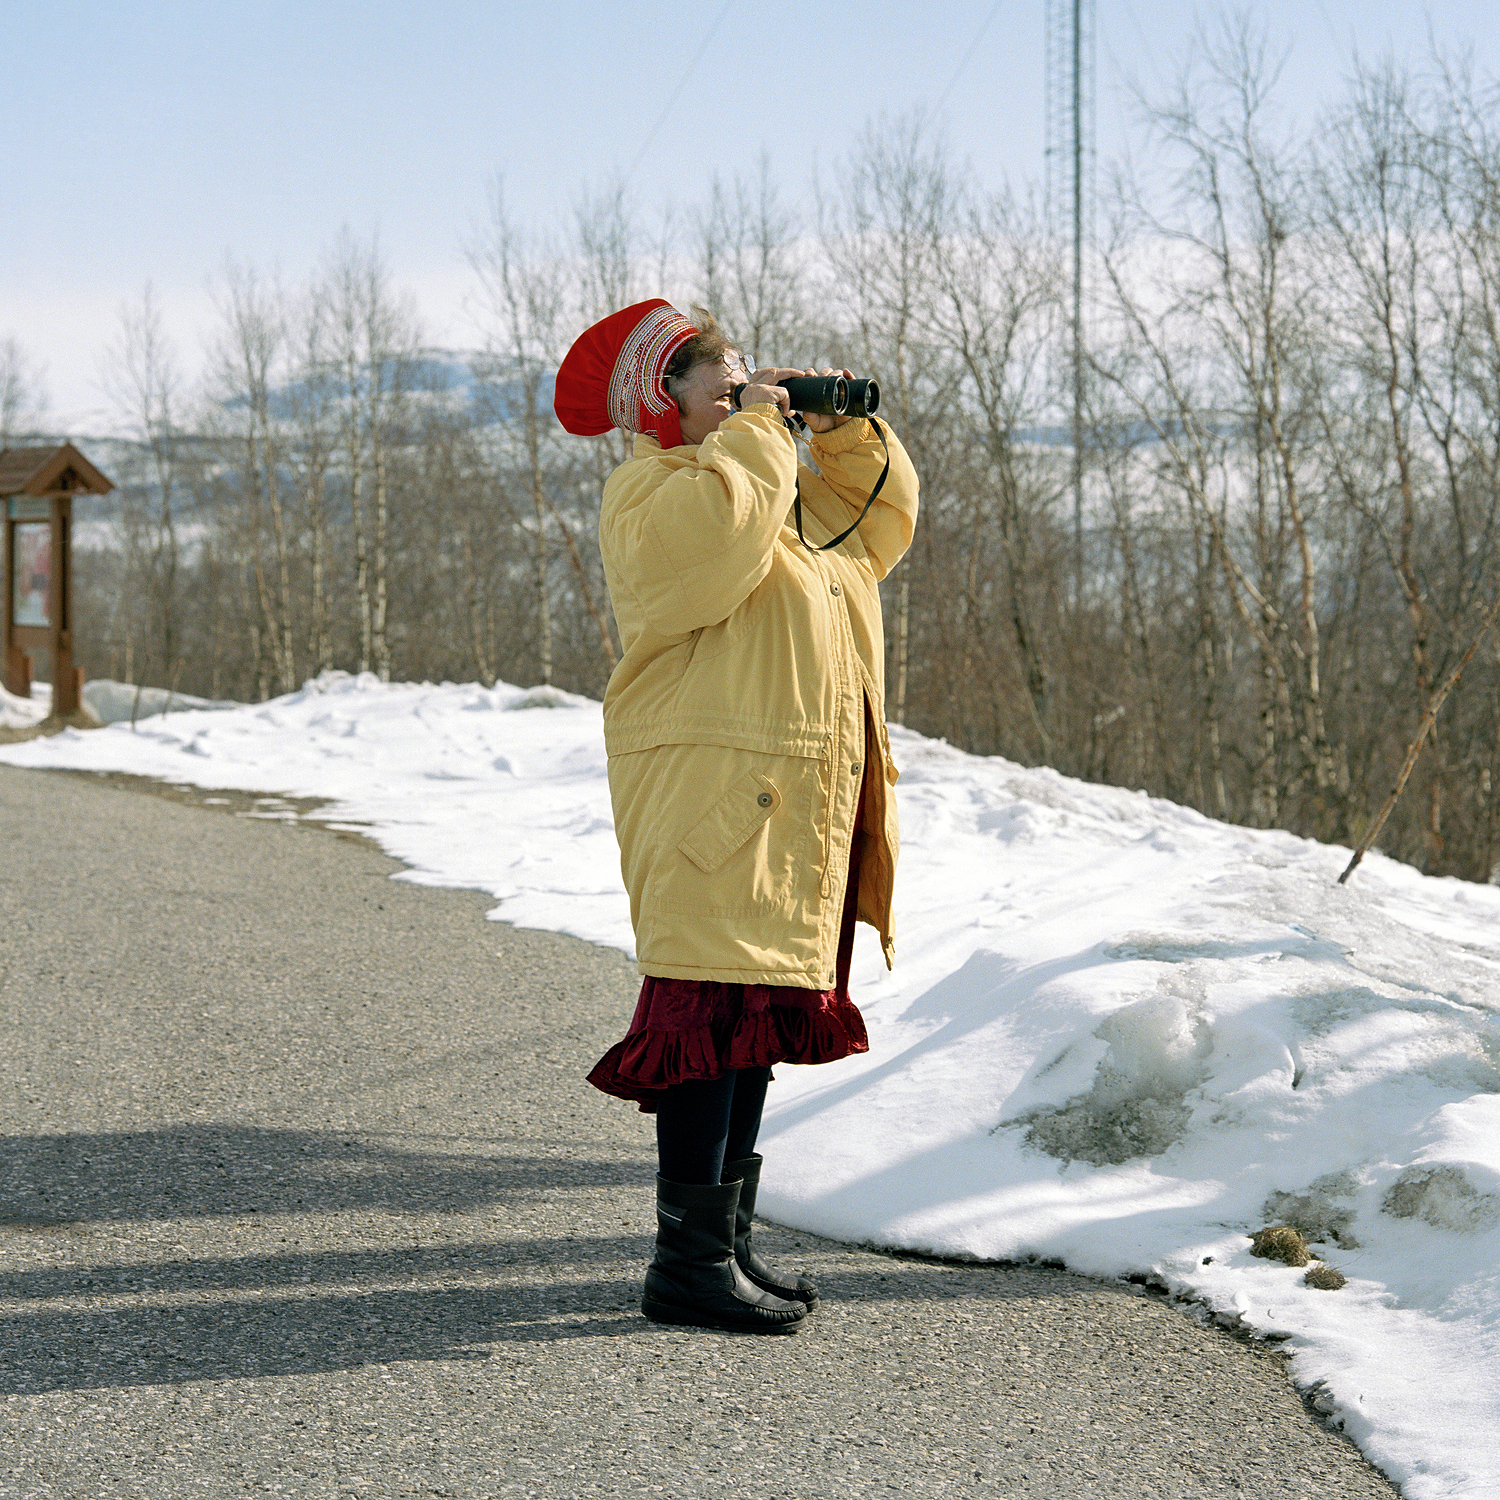 Looking for the lost reindeer, 2005